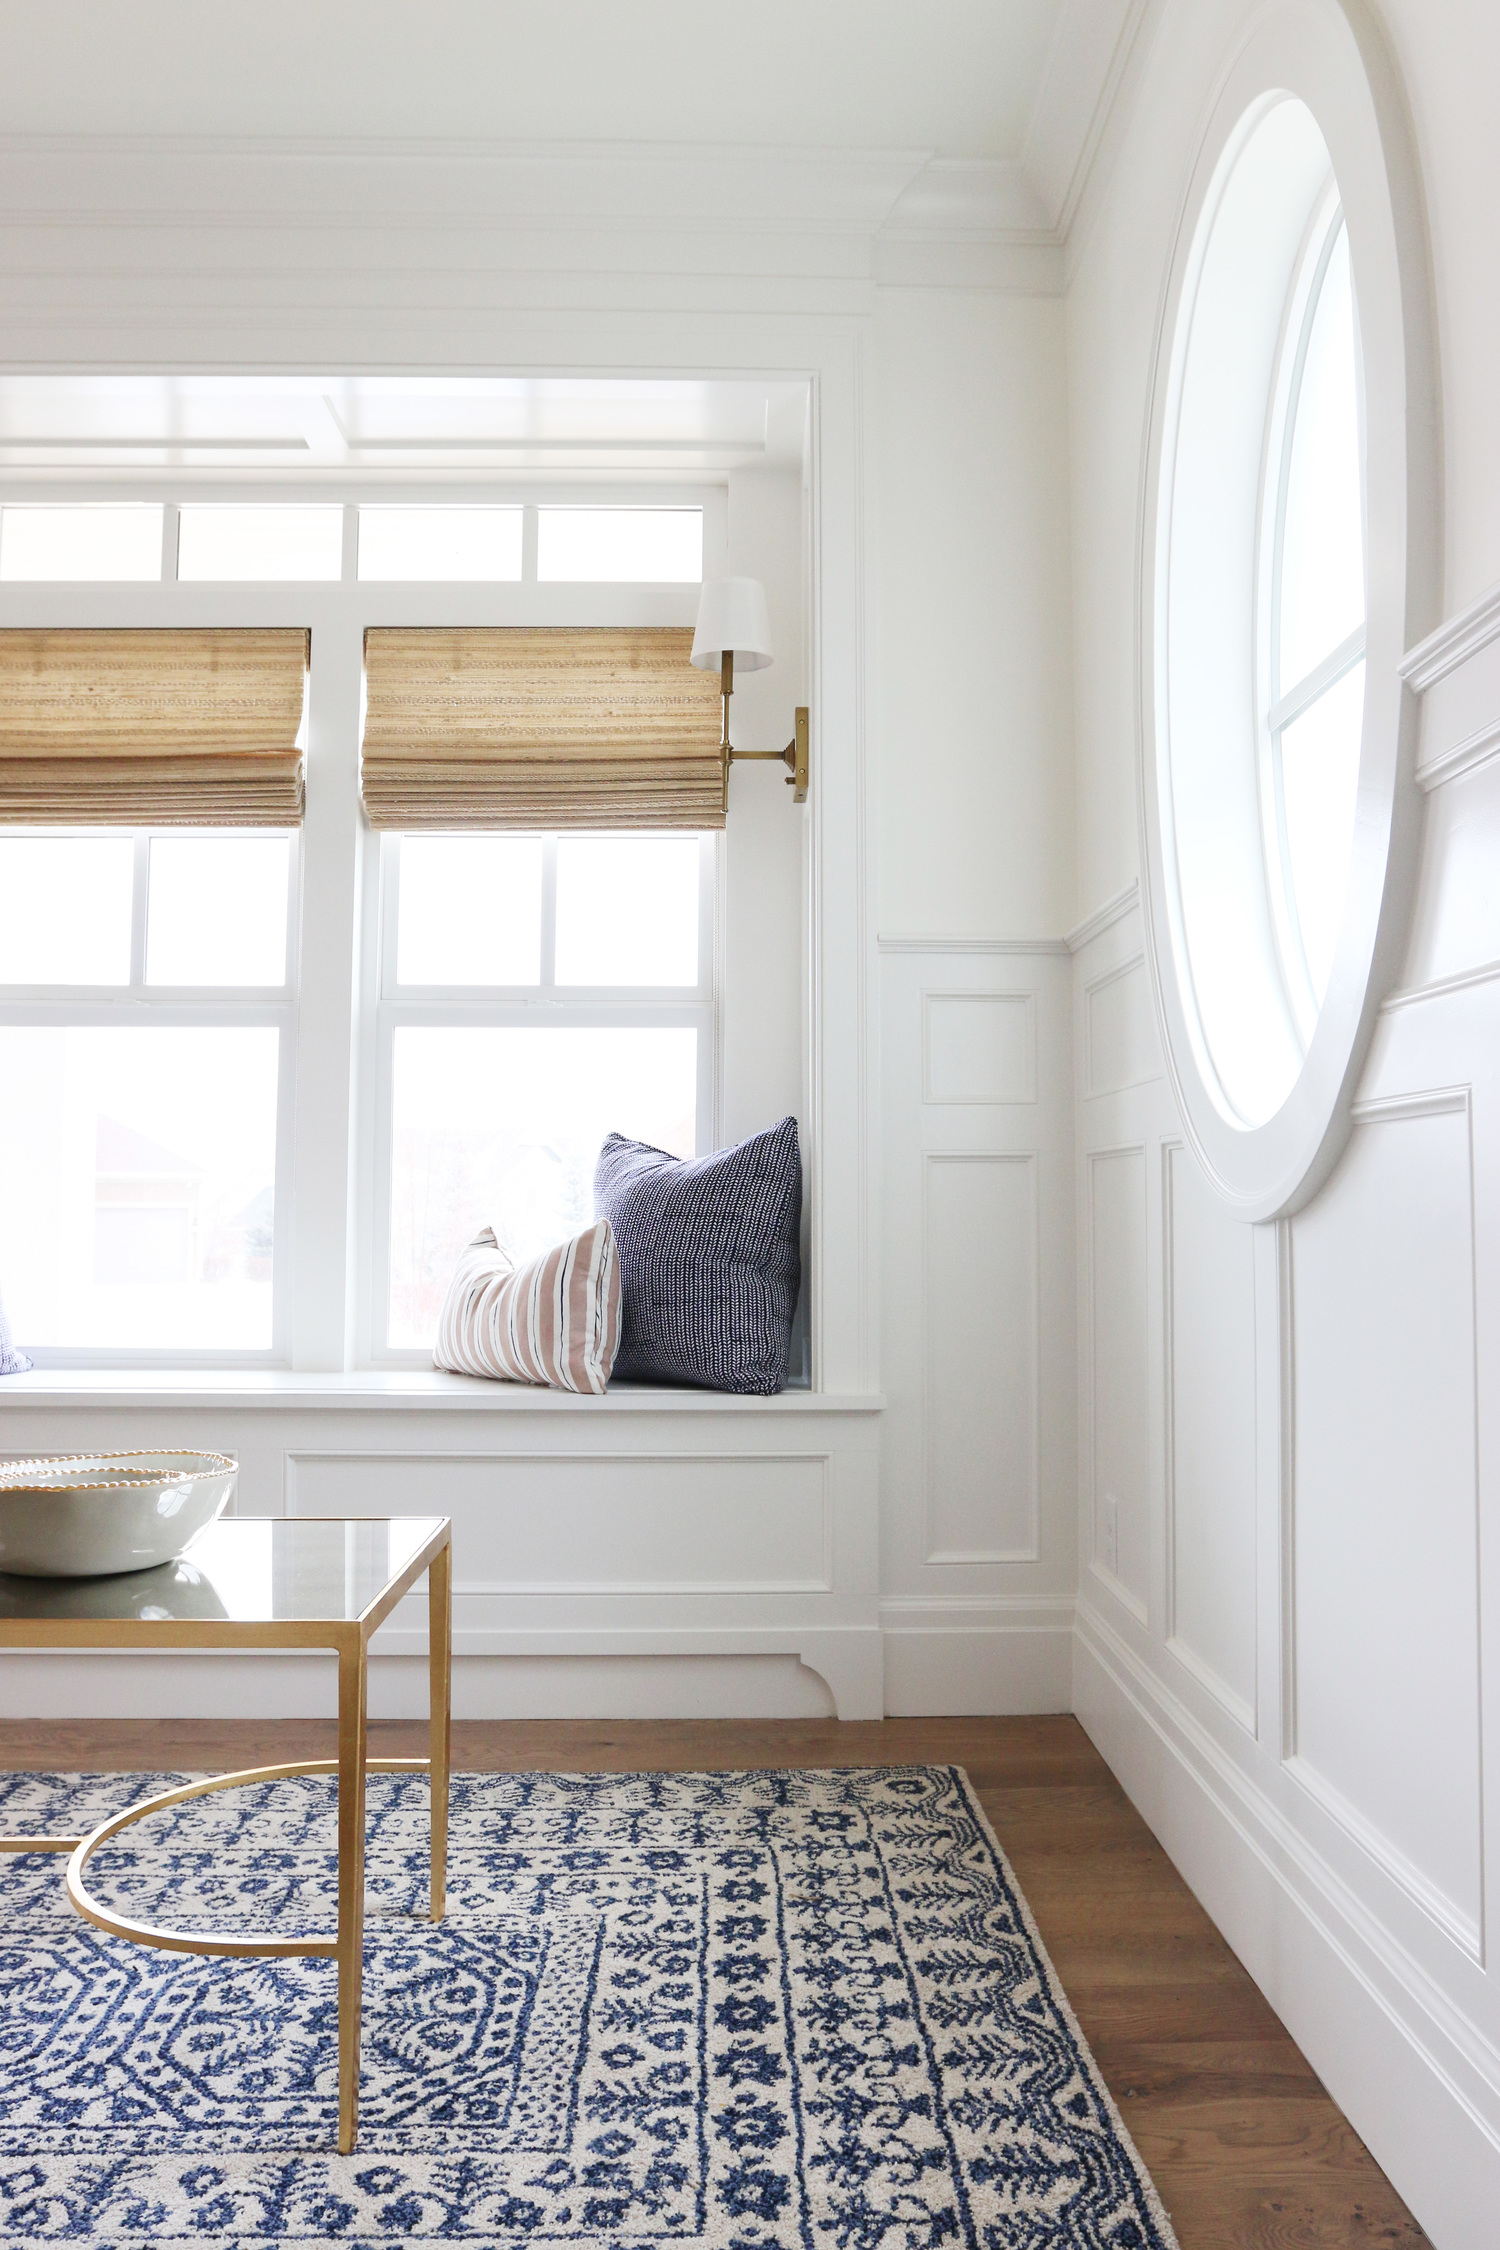 Benjamin Moore Simply White: White Paint Colors We Considered For Our Dining Room